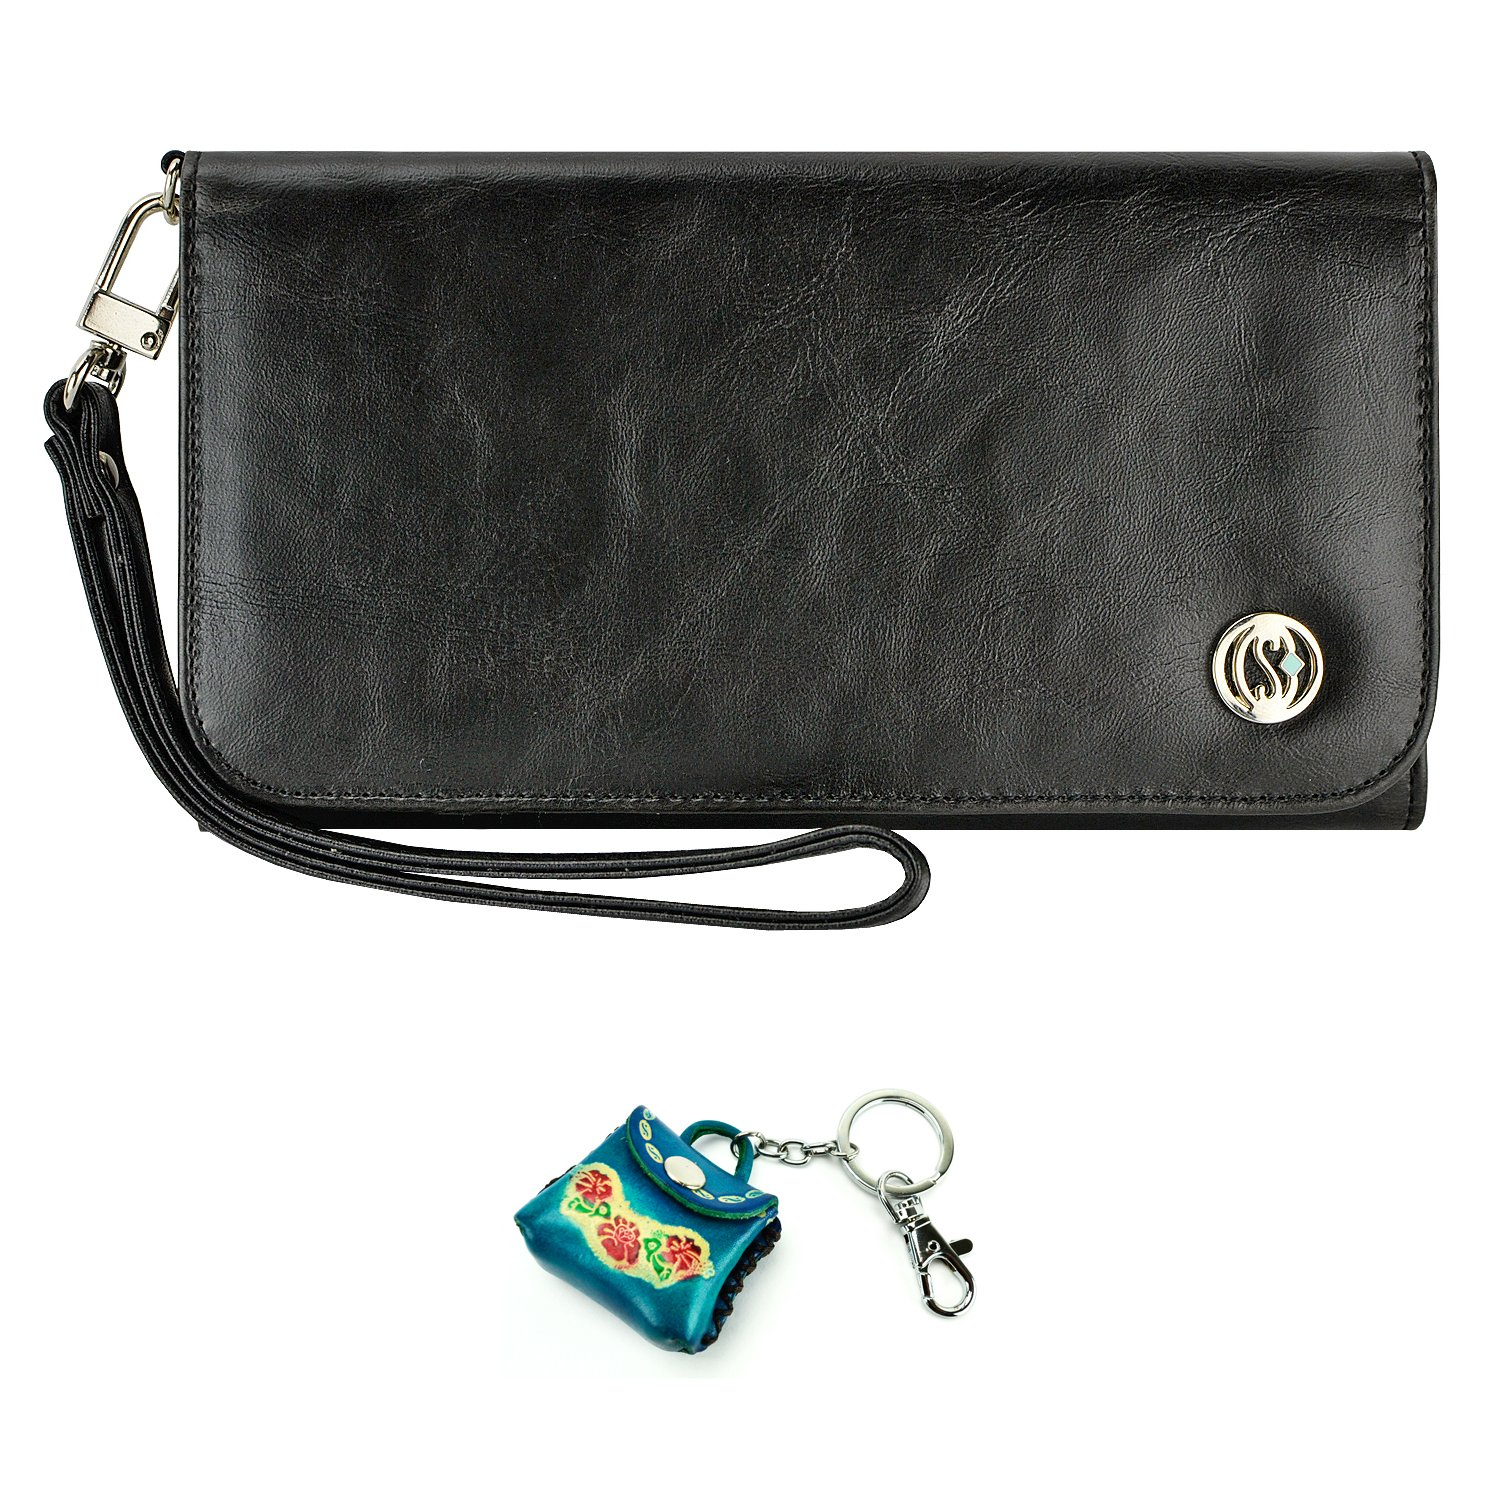 Amazon.com: Smart Phone Wristlet, caseen BELLA Universal Wallet Clutch Purse Case for Apple iPhone 7 6S 6 Plus, Samsung Galaxy S8 Plus S7 Edge S7 S6 Edge S6 ...